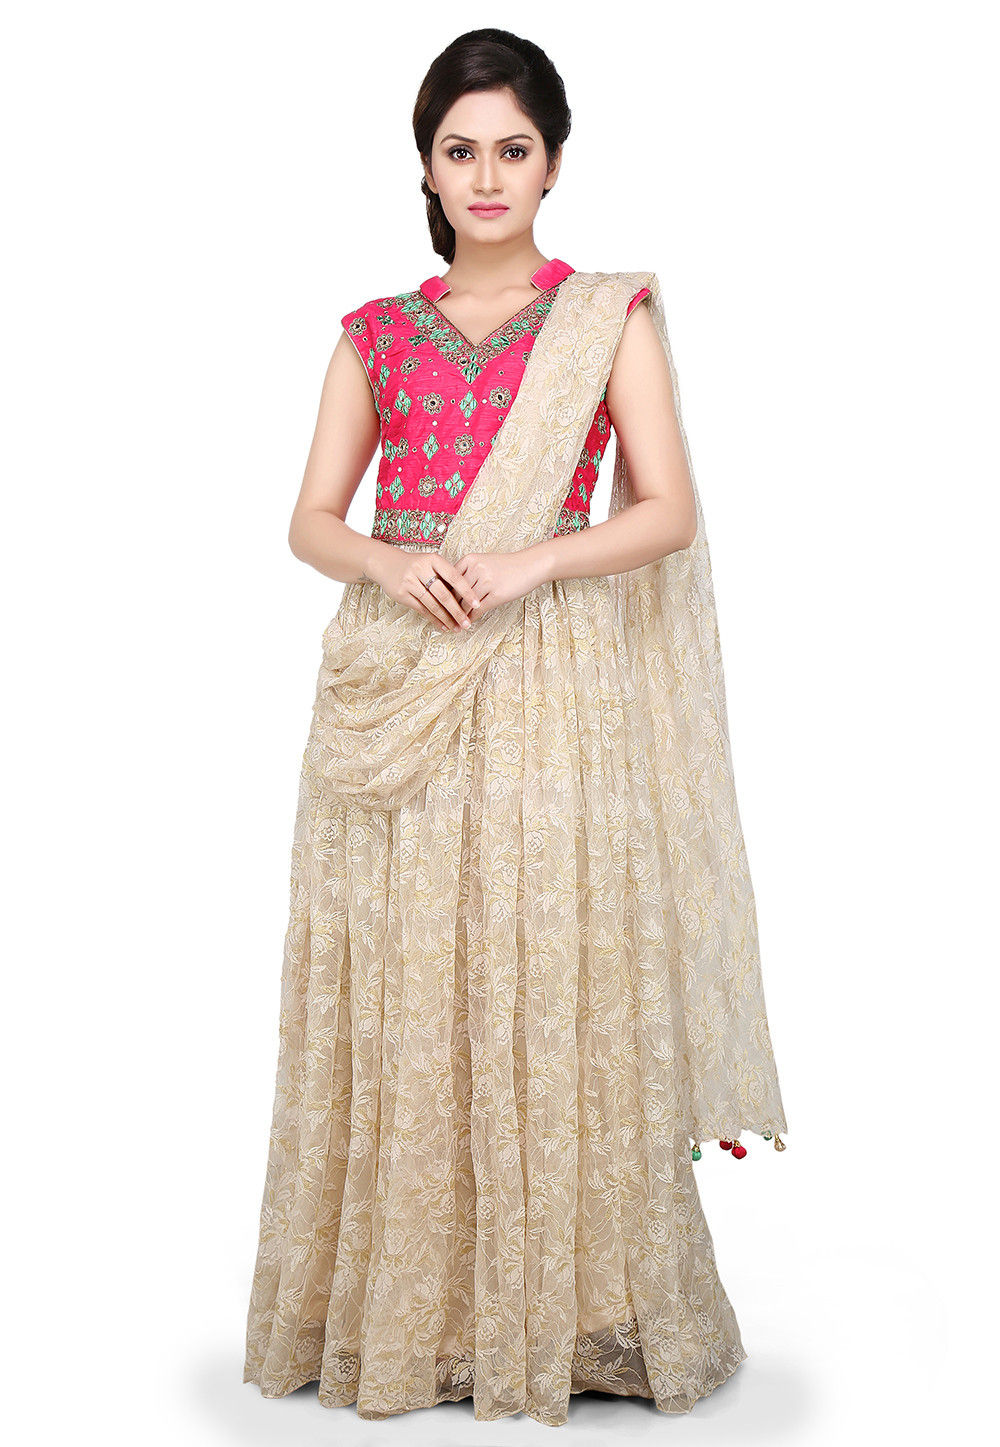 Hand Embroidered Net Pleated Saree Style Gown in Off White and Fuchsia